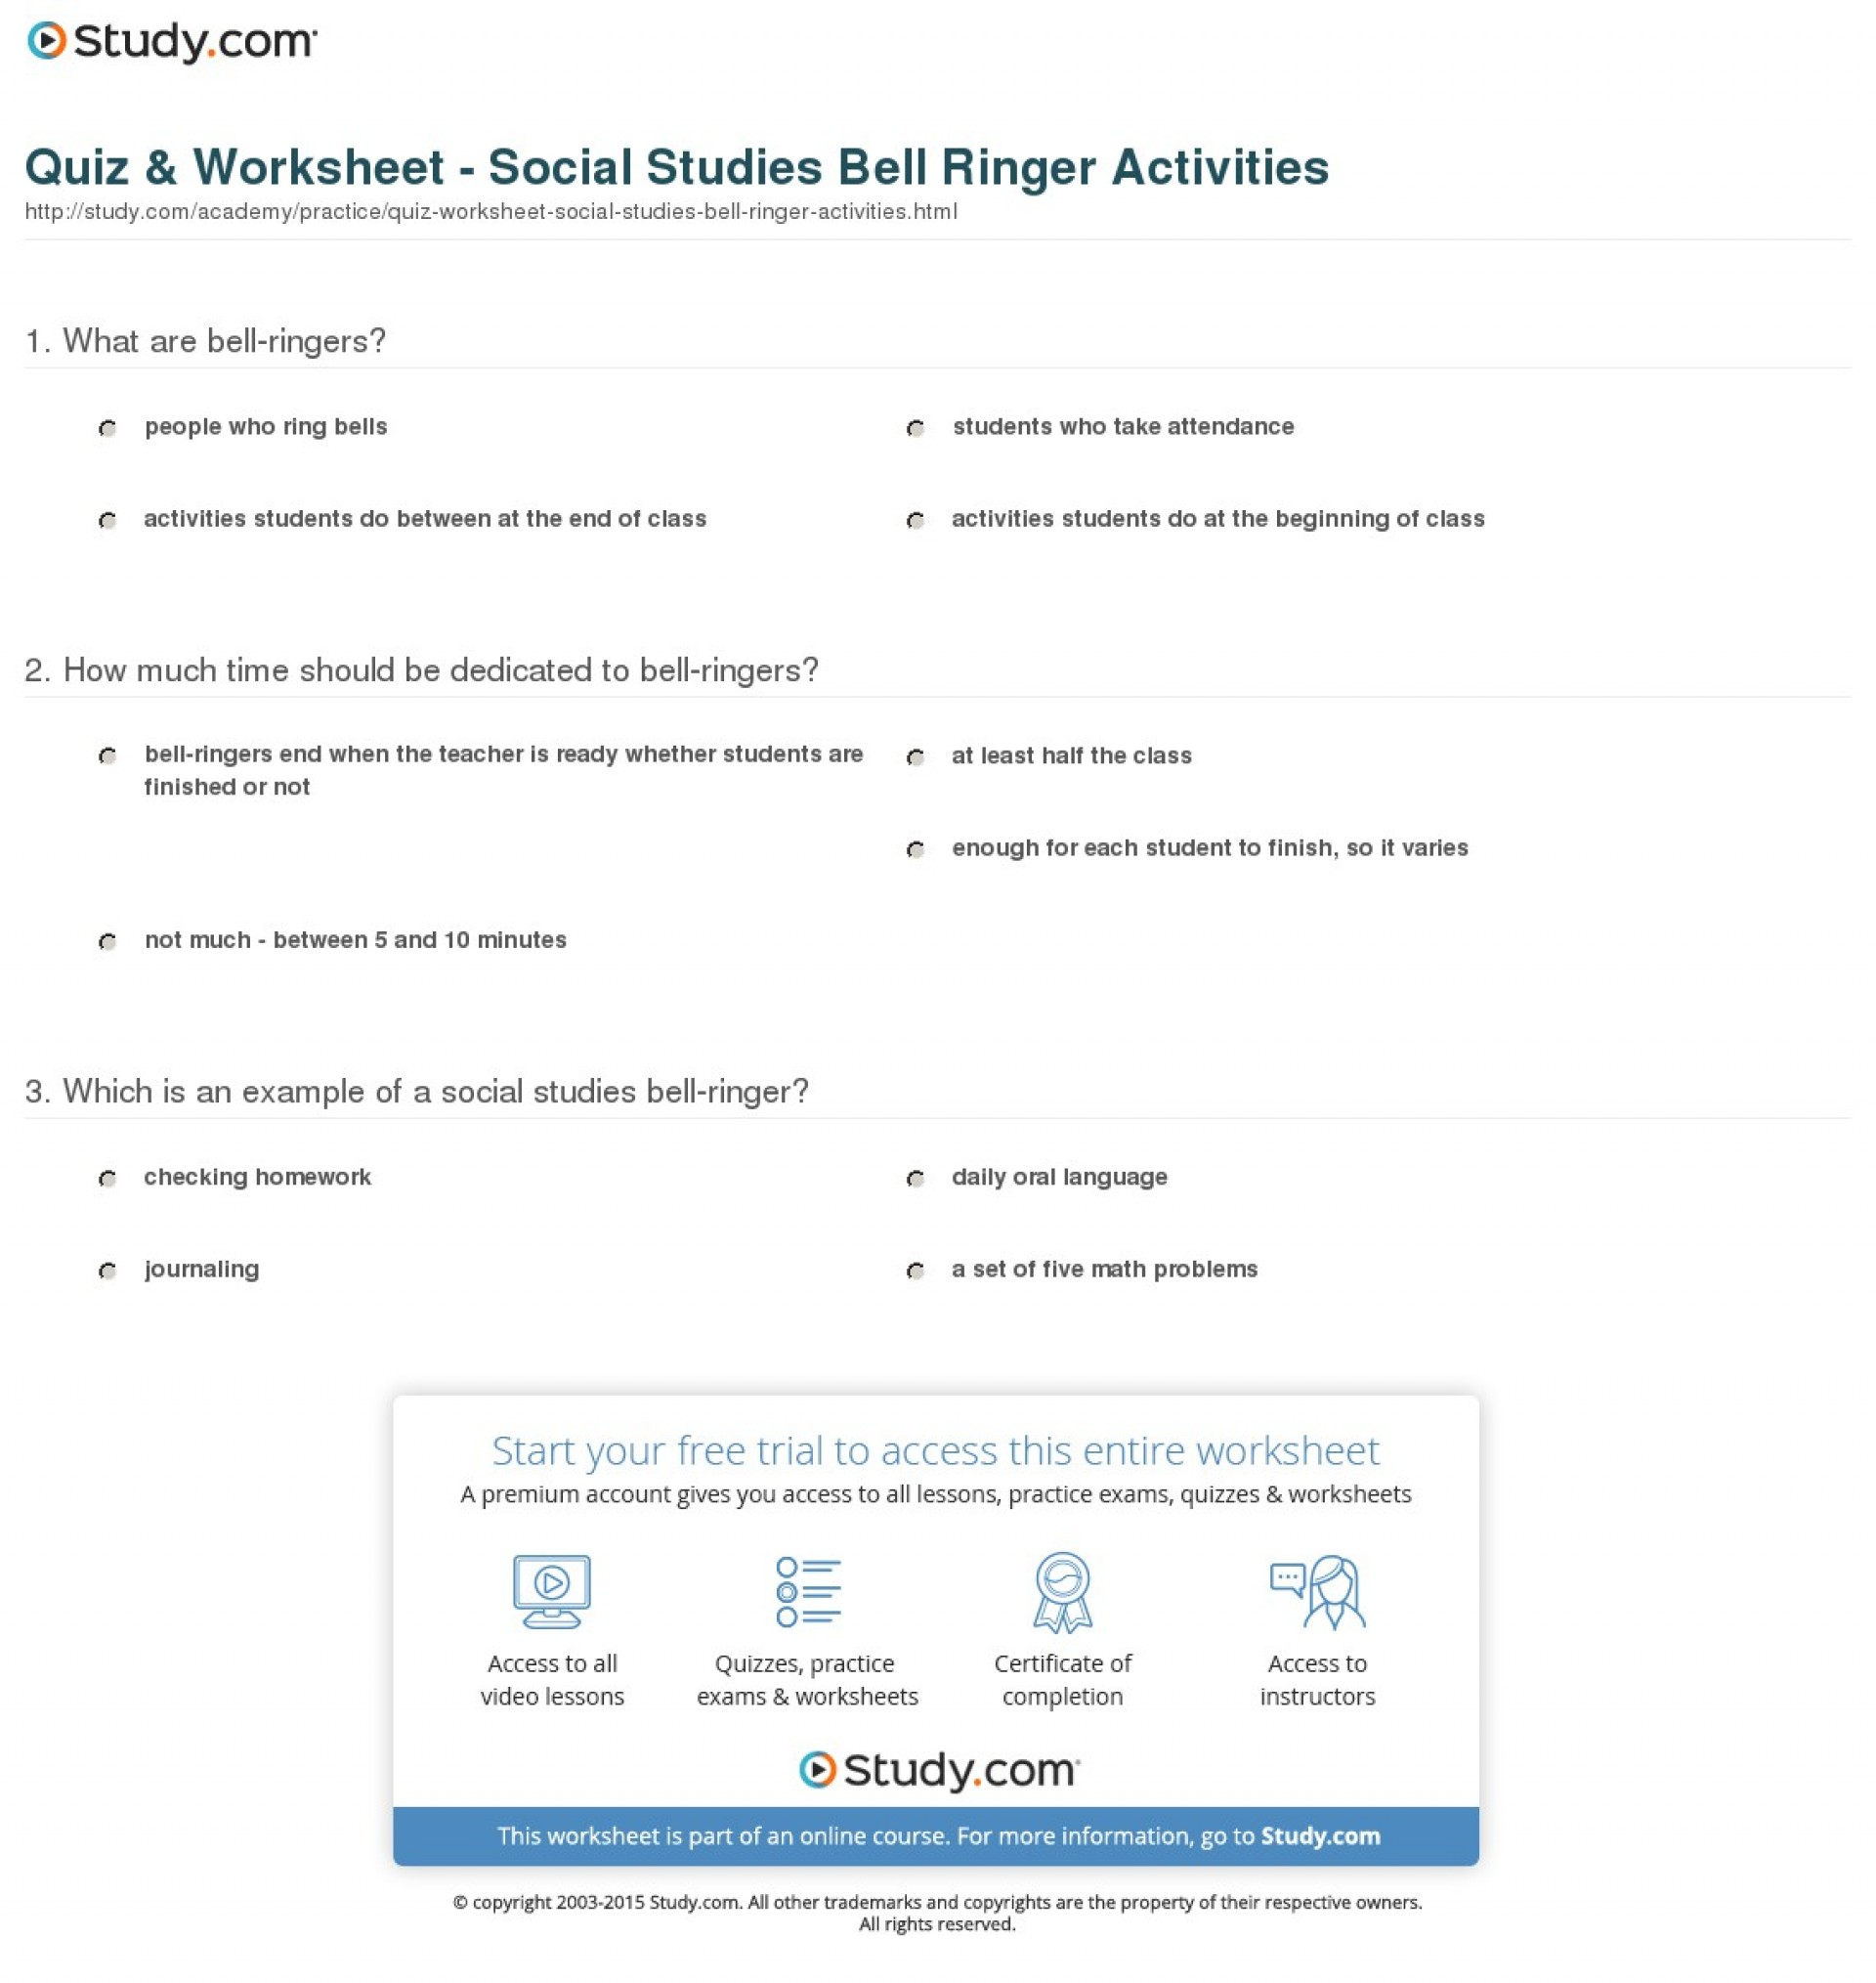 016 Essay Example Quiz Worksheet Social Studies Bell Ringer Activities Sample Ged Essays With Rare Scores Pdf 1920